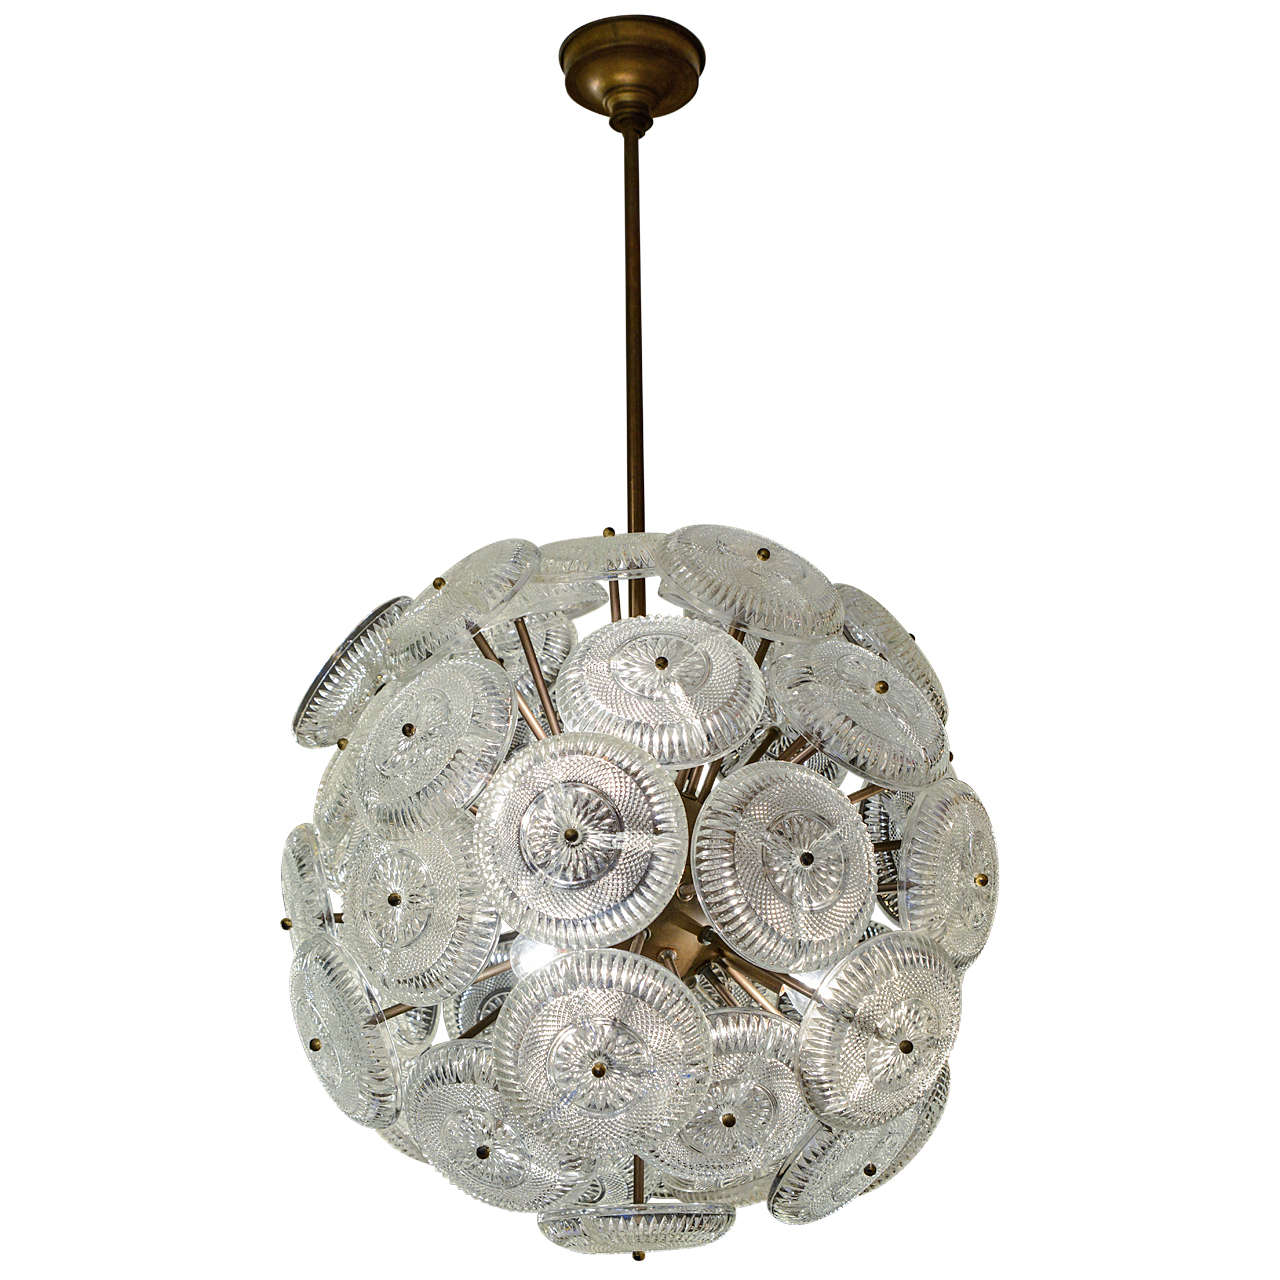 Small sputnik style french chandelier at 1stdibs small sputnik style french chandelier for sale aloadofball Gallery